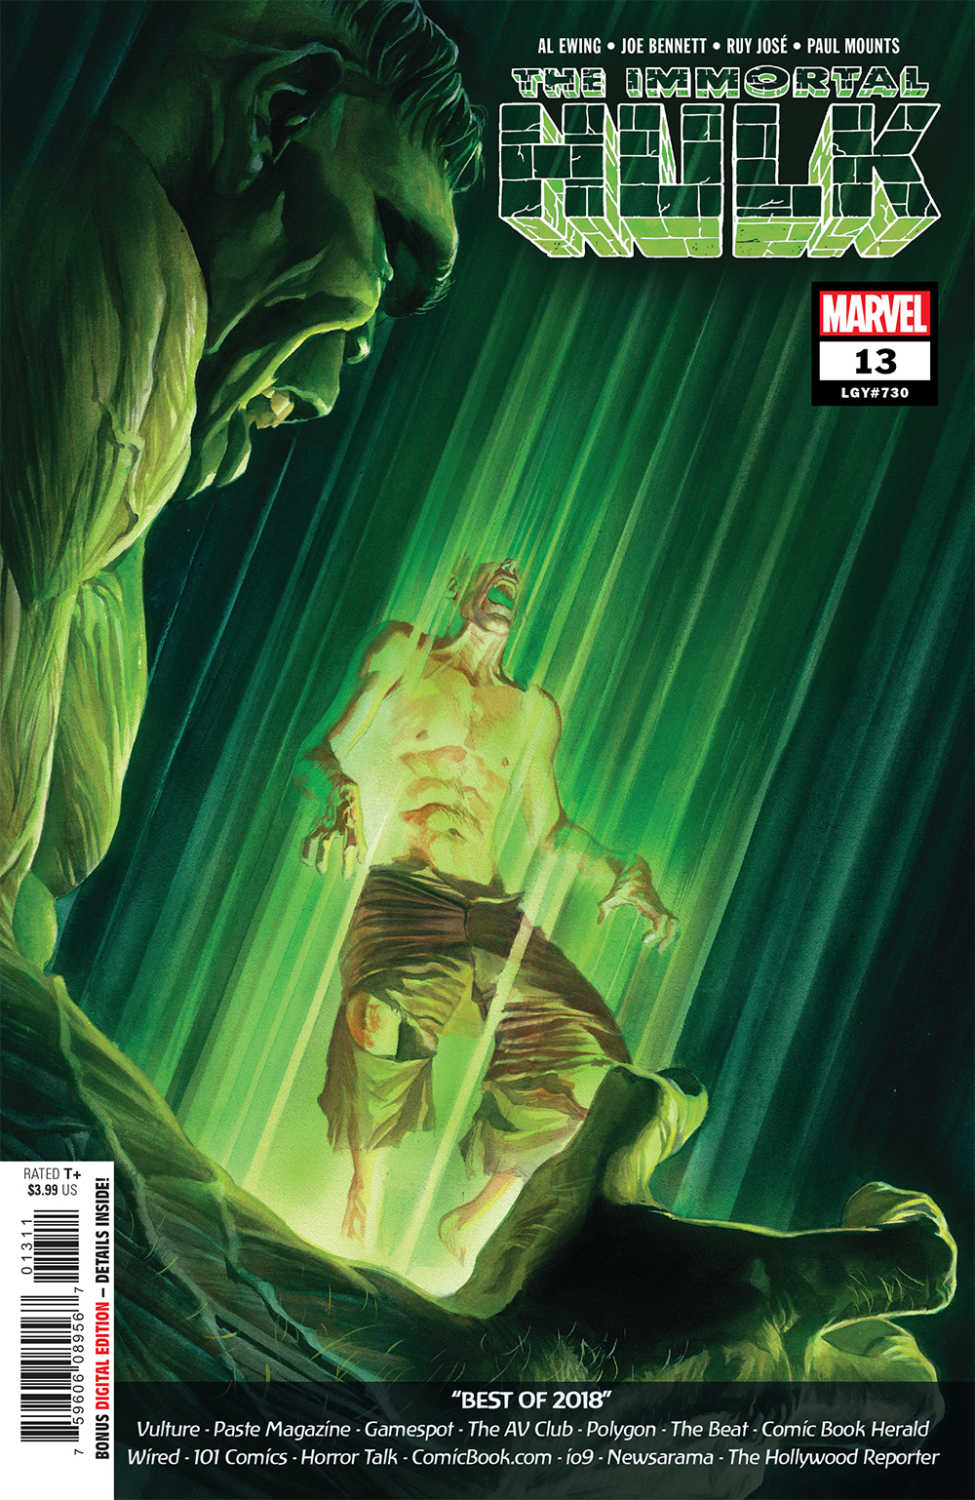 The Immortal Hulk #13 cover